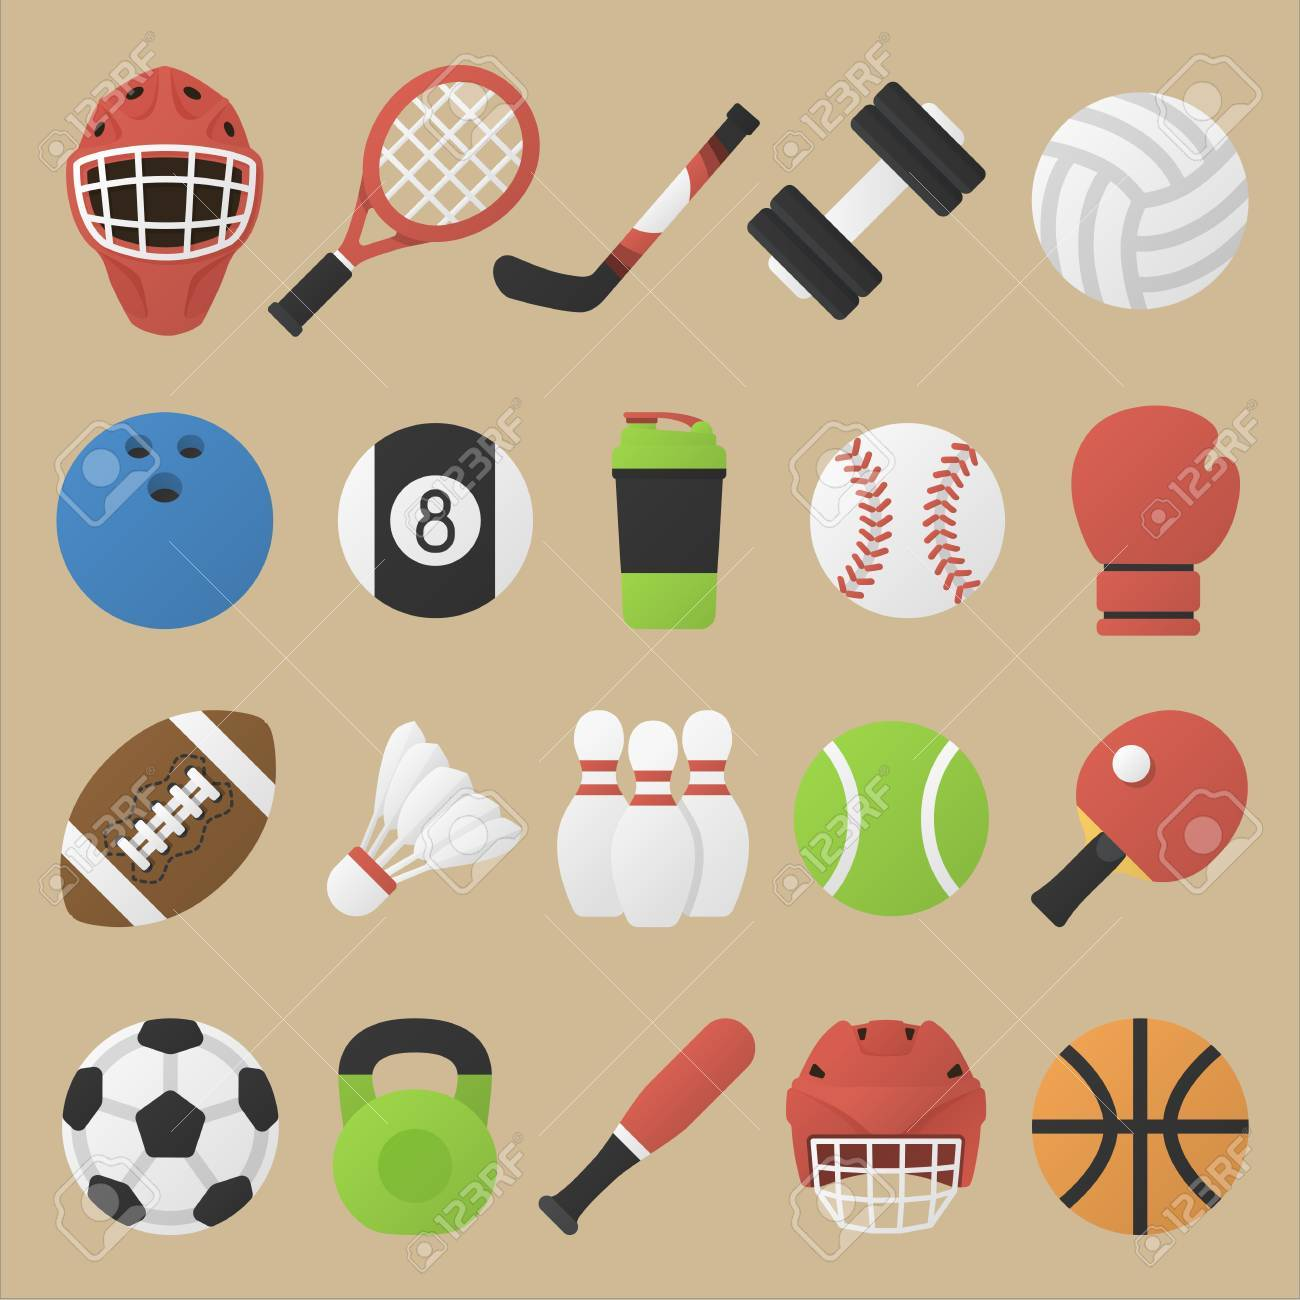 Illustration Set Of Sport Equipment In Flat Design Collection